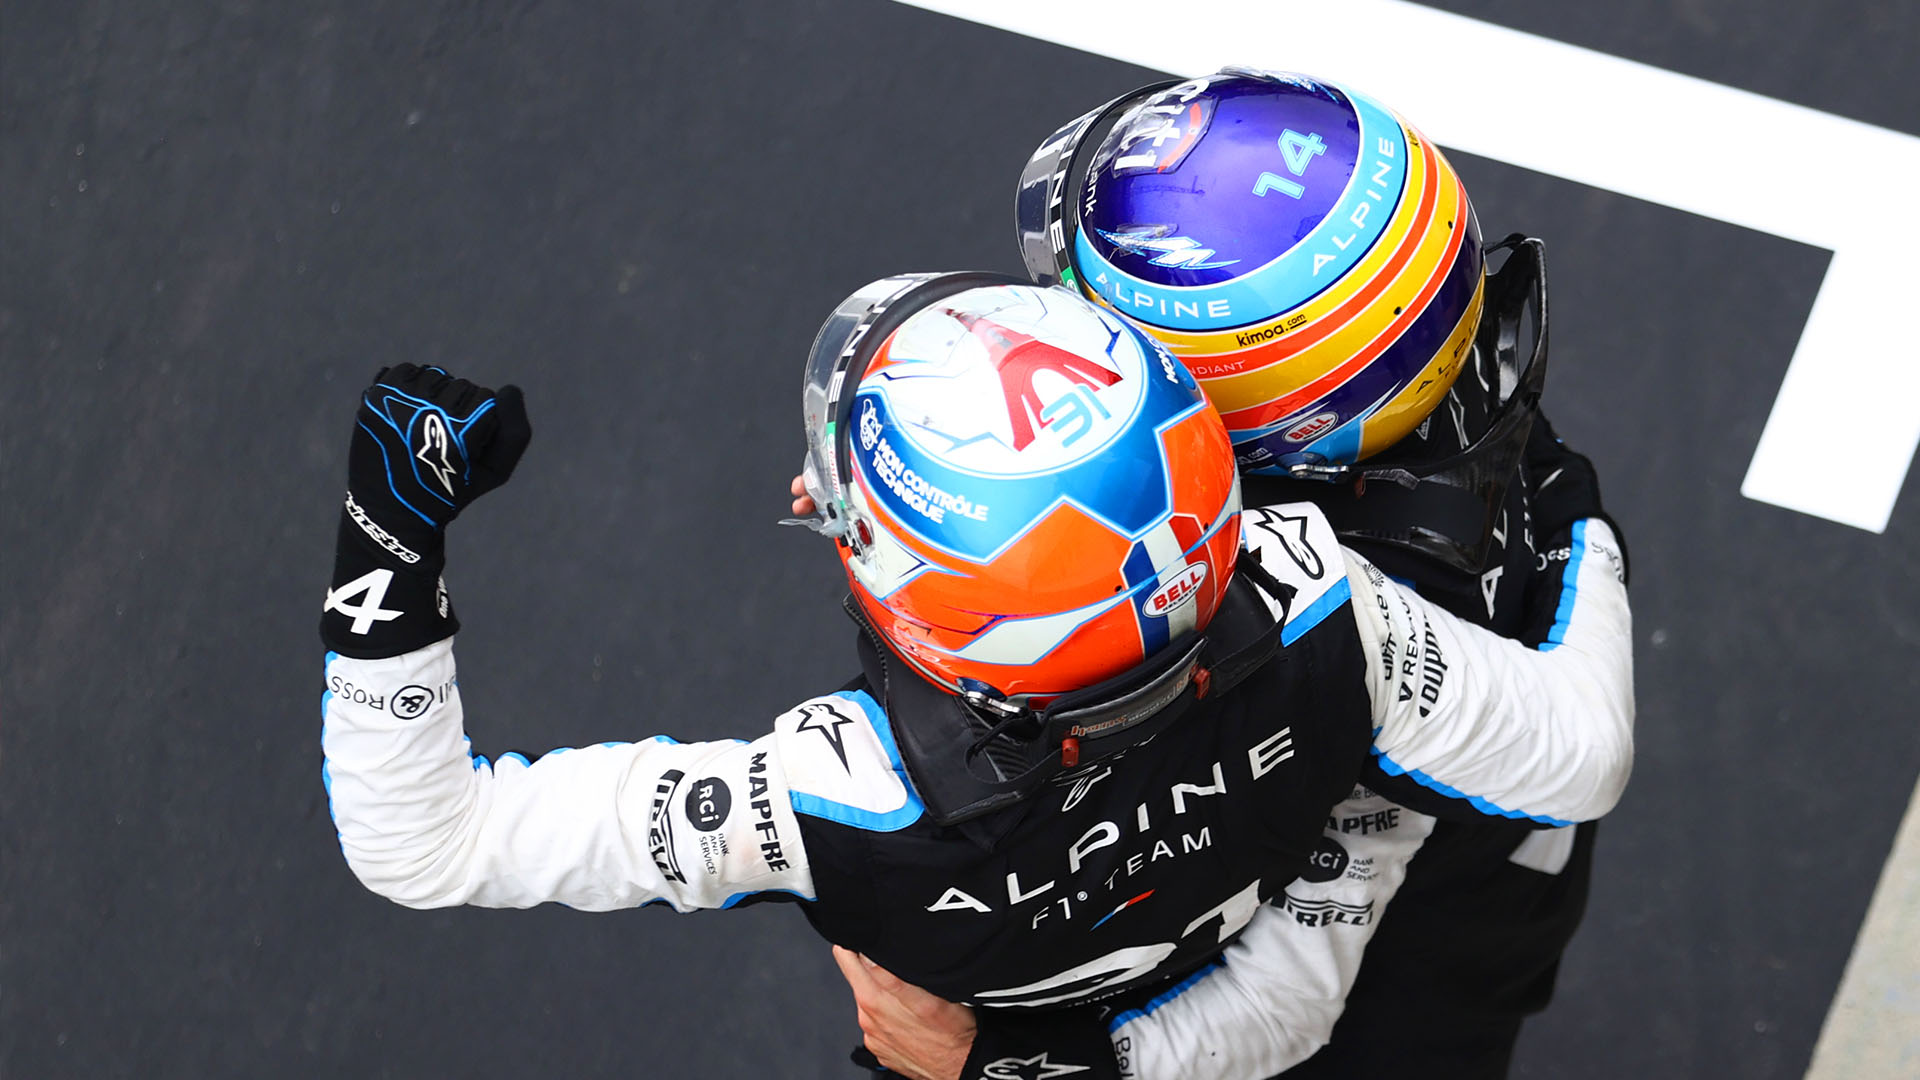 'A day he'll never forget' – Alonso lauds team mate Ocon, 18 years after own maiden win in Budapest